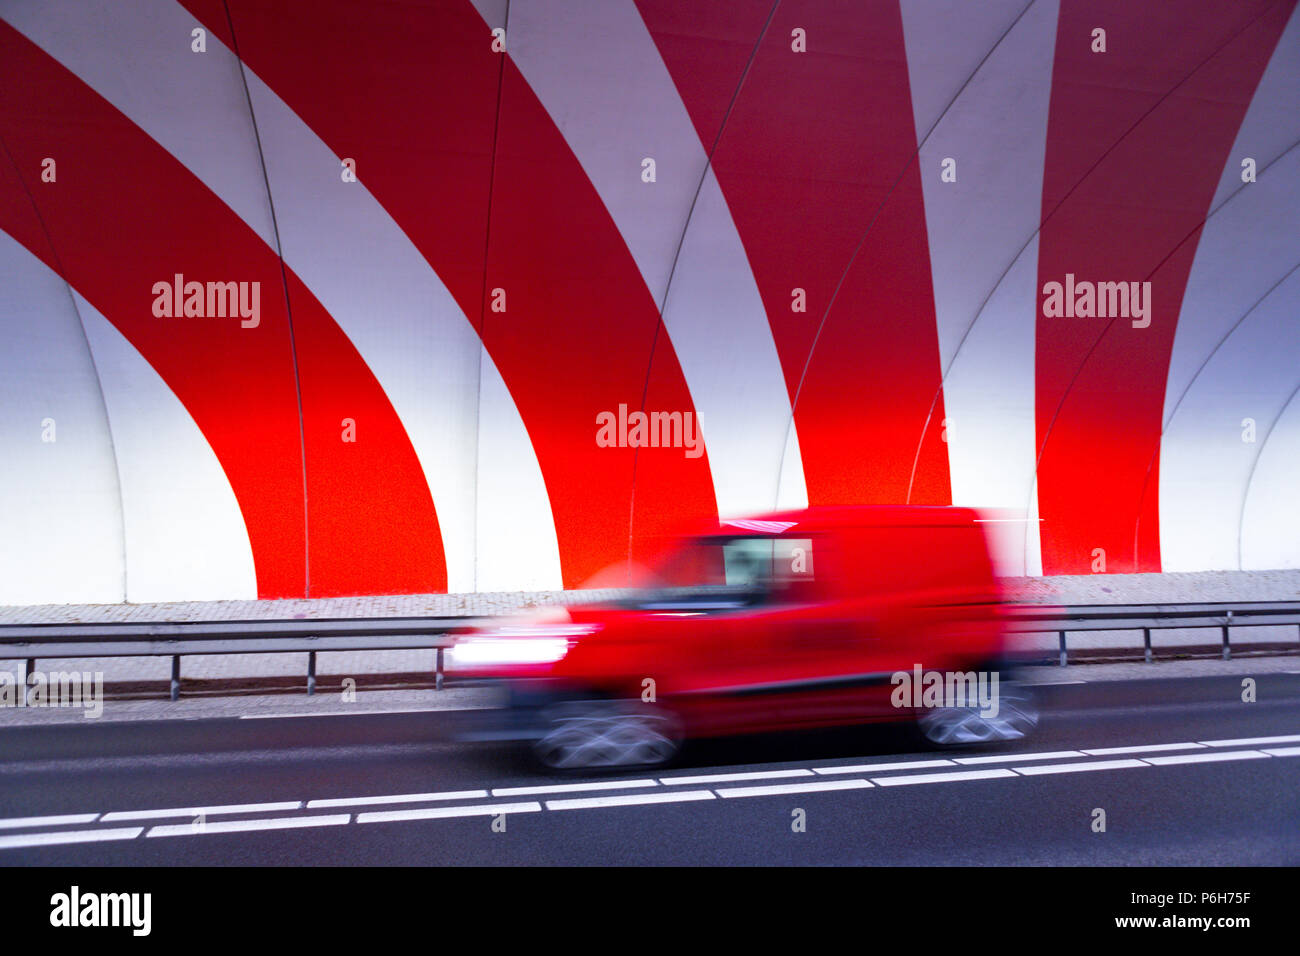 Red Car Game >> A Red Car Driving Fast In A Tunnel With Red Dynamic Stripes On The